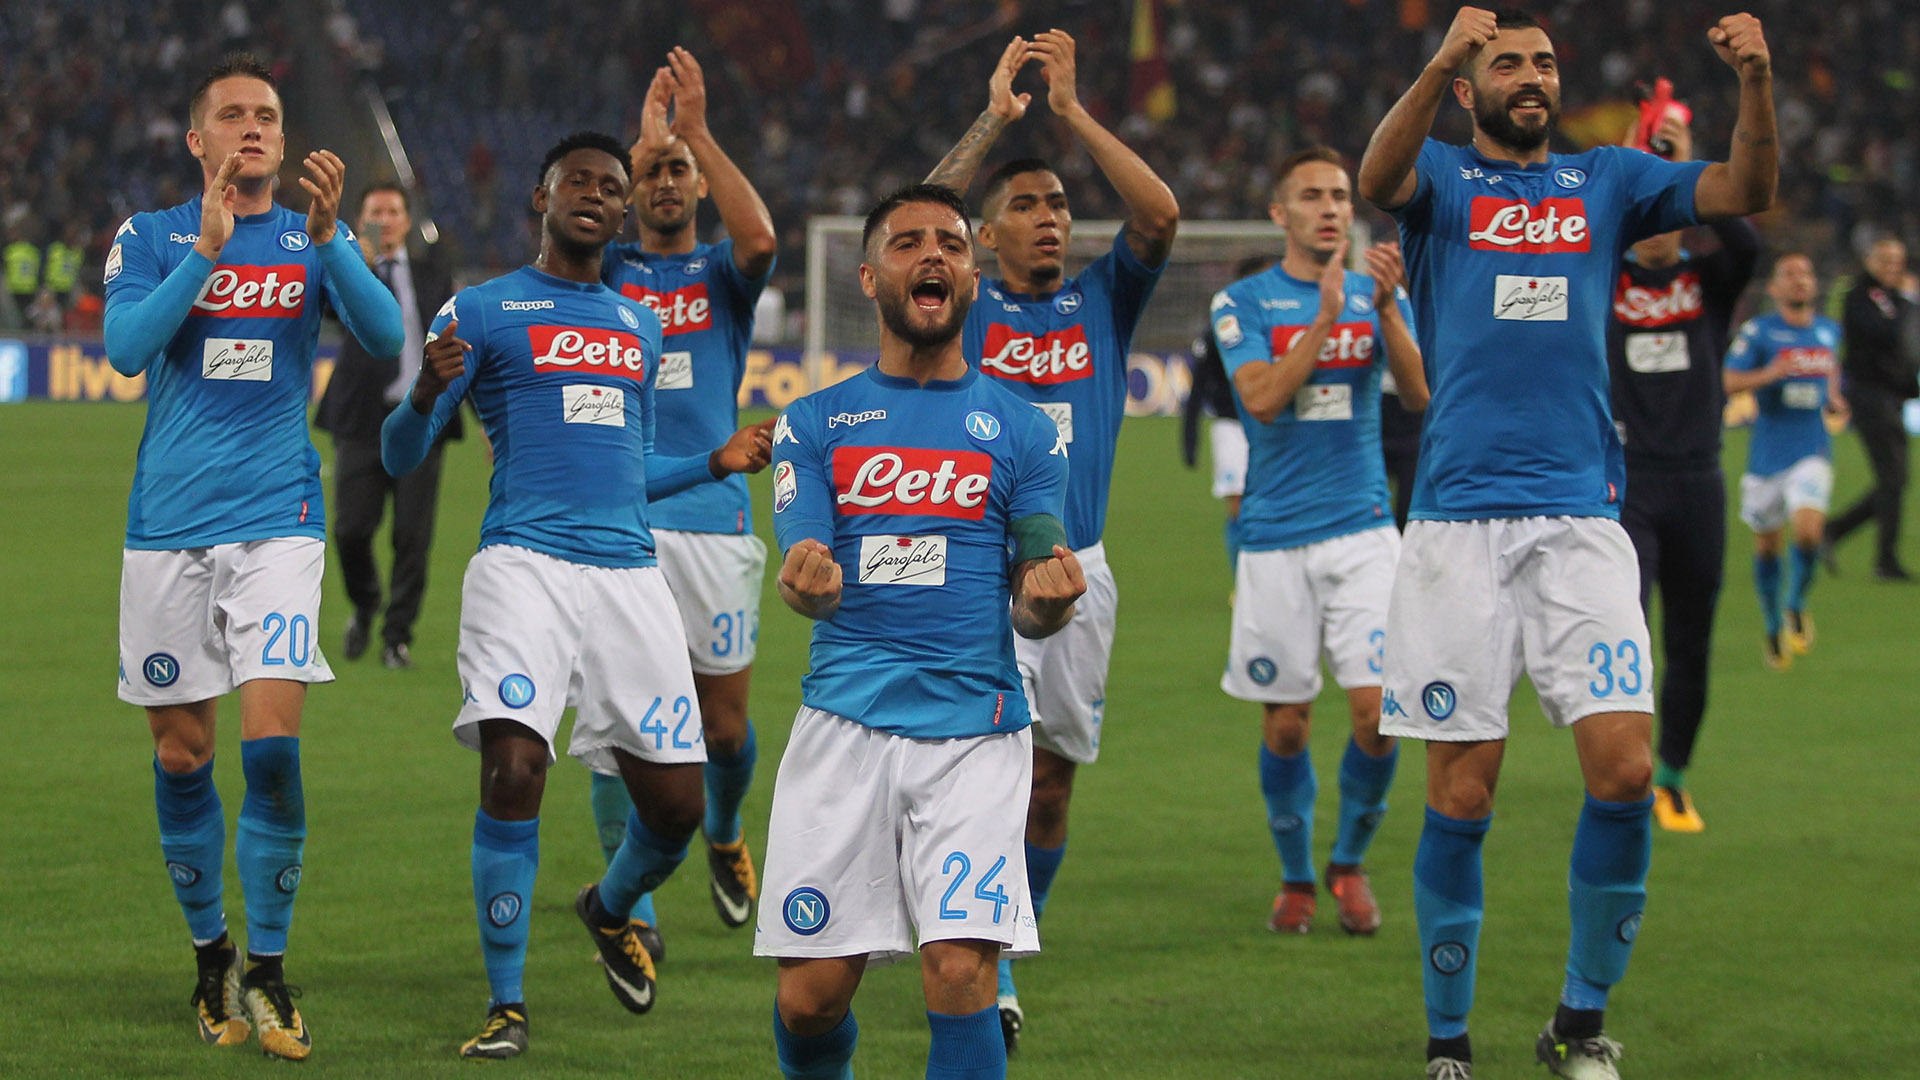 Napoli celebrating vs Roma